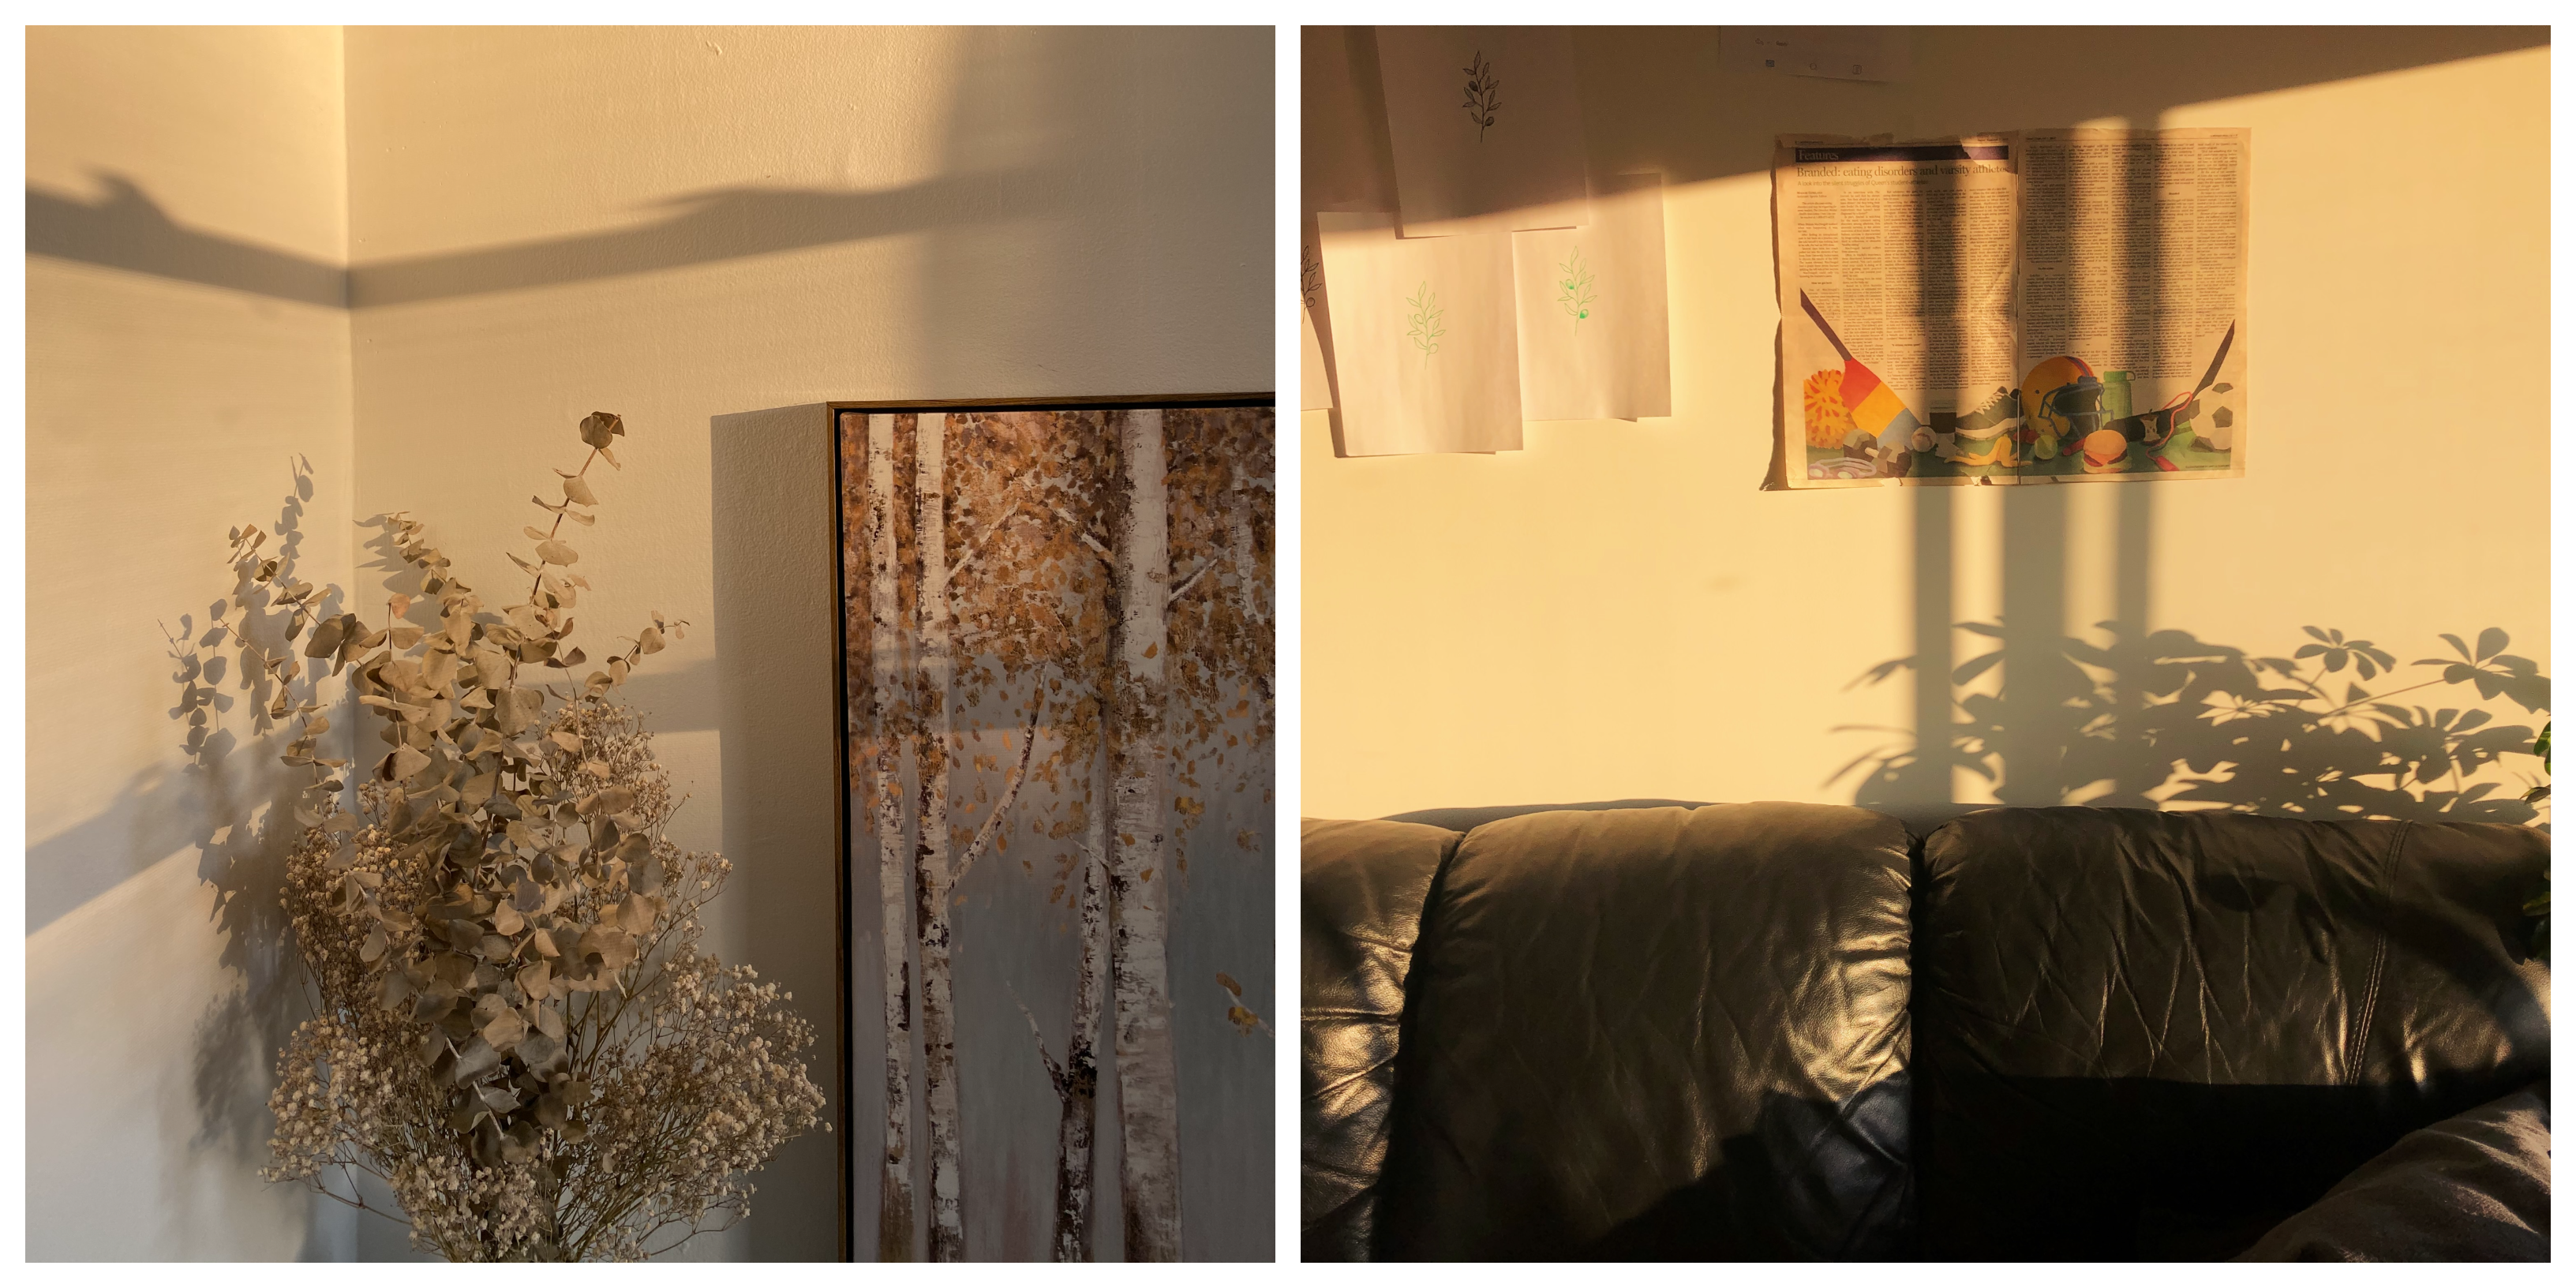 Side-by-side images from Maggie's living room. On the left, a brown dried bouquet leans against a painting. On the right, a newspaper is taped to the wall above a black couch.